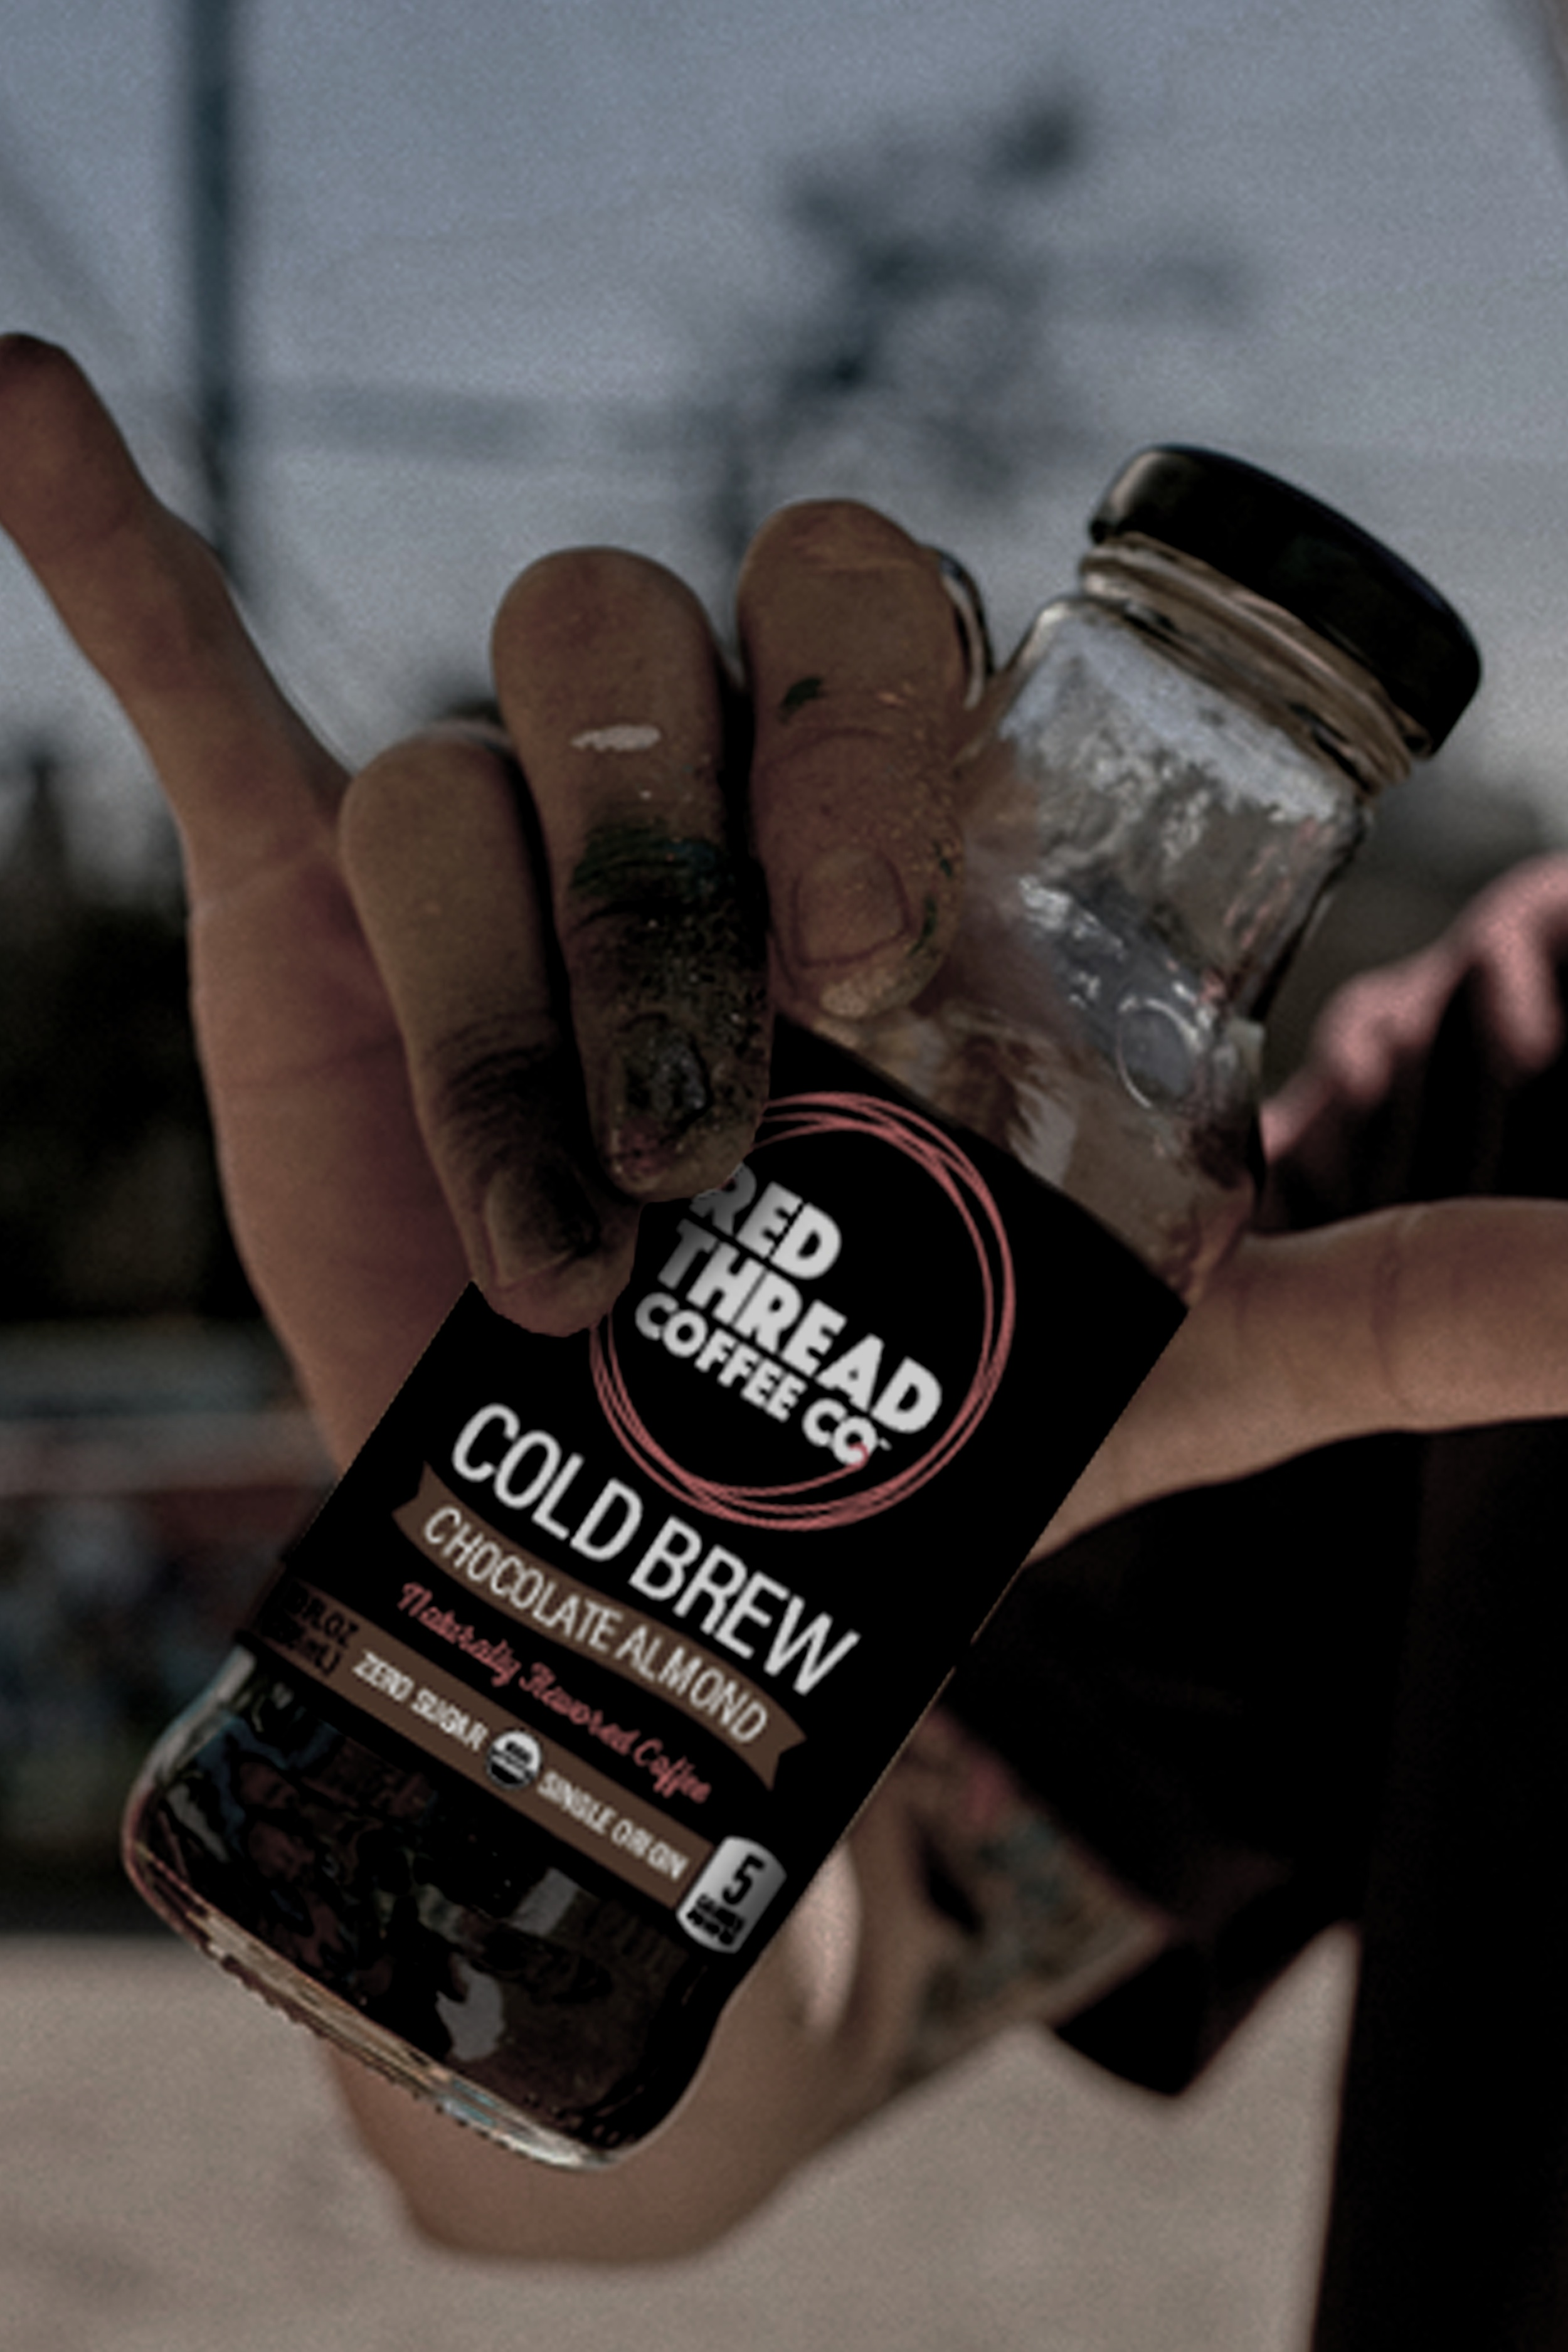 Ready to Drink Cold Brew - You open and drink it. It's that easy.